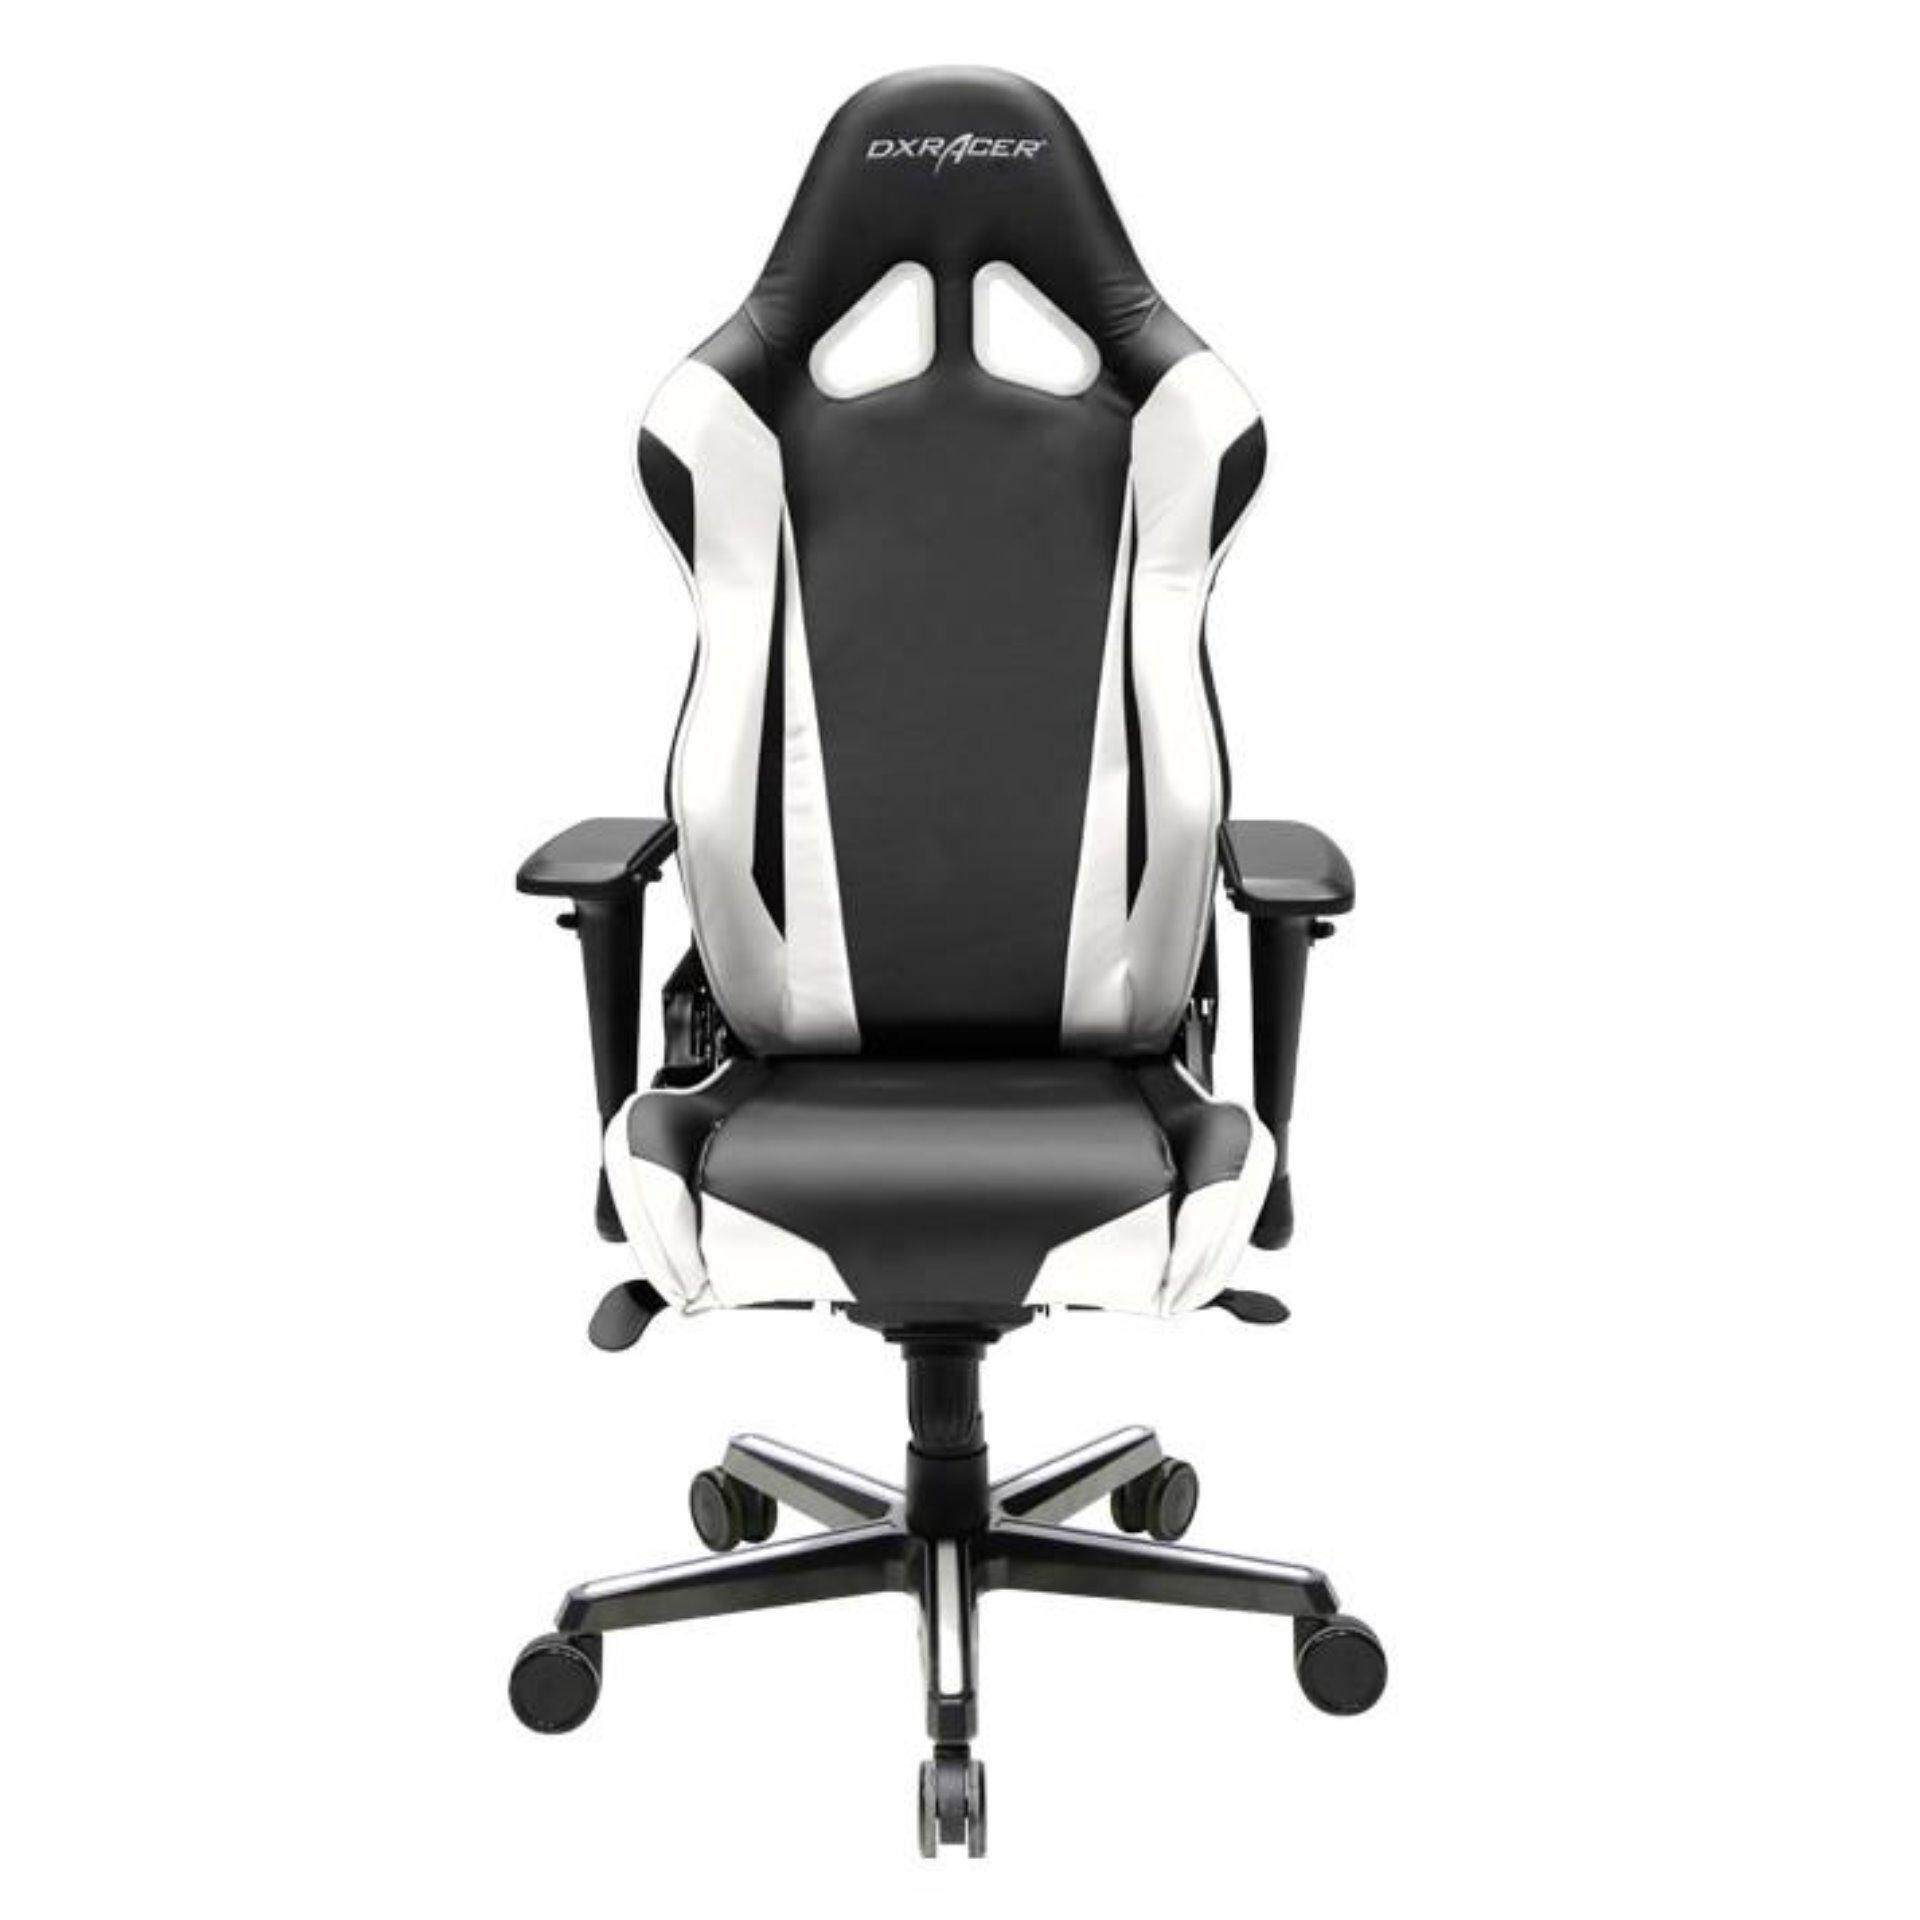 office best chair images seat computer on automotive setup pinterest dxracer room gaming chairs dxracerus desk